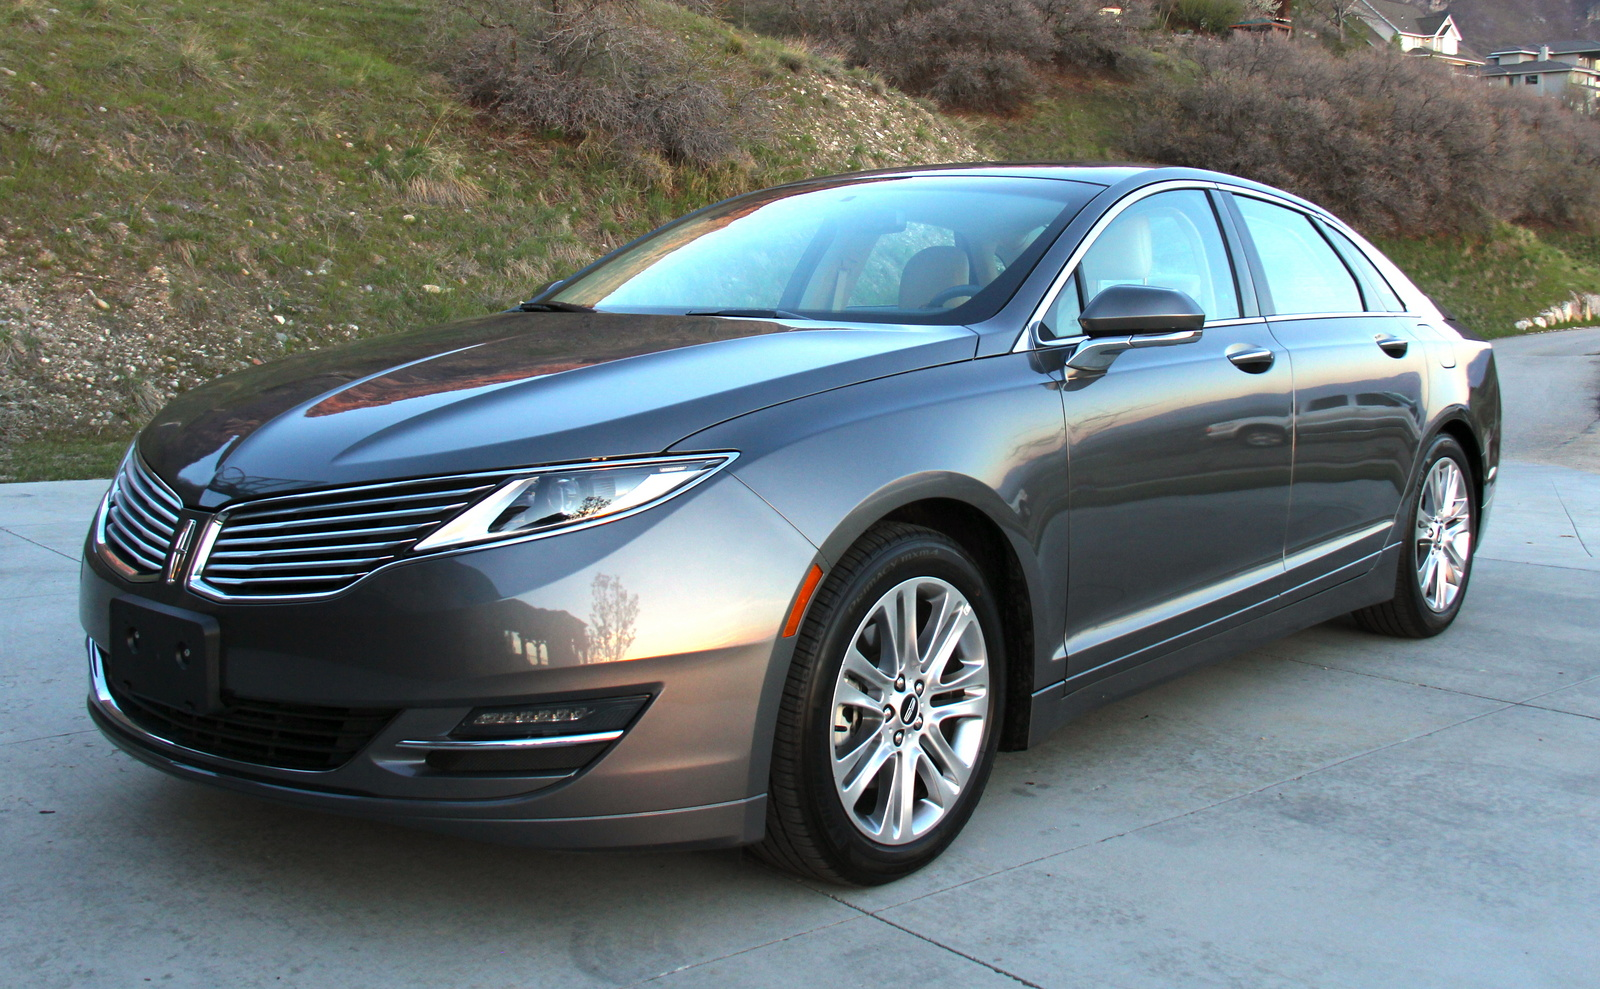 Lincoln Mkx Will Get A Frontal Lift Up besides 2000 Lincoln Ls Pictures C2615 pi36070527 likewise Reset Ford Keyless Entry Without Factory Code together with Lincoln Brand Tutors Car Dealers On Selling Luxury likewise Reviews Fusionmalibu. on lincoln mkz 2012 models